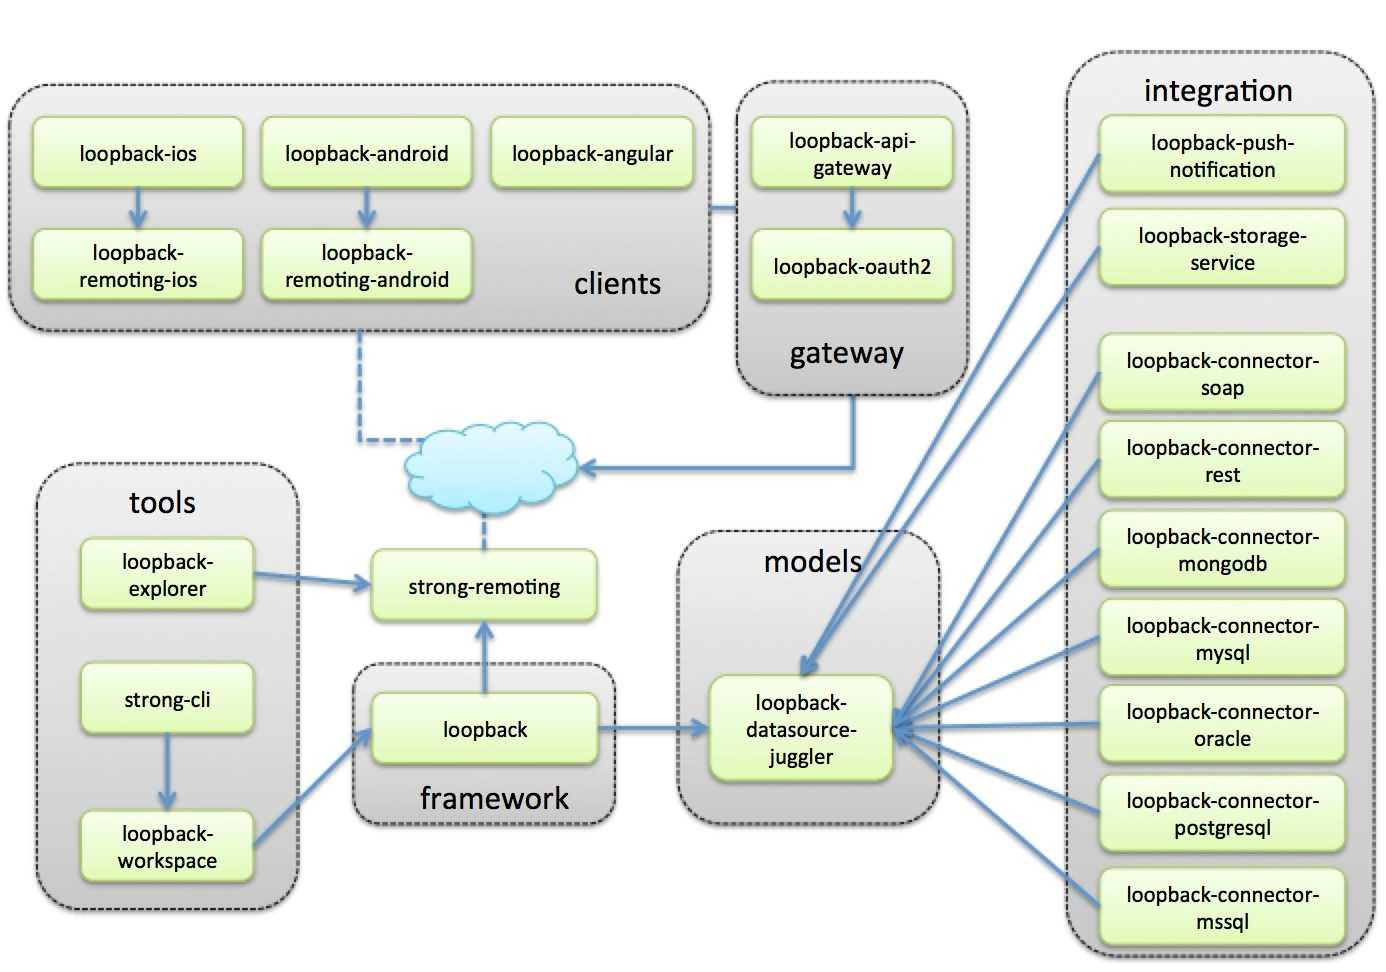 entity framework diagram 2 way quick coupling manifold loopback - open-source api server powered by no...